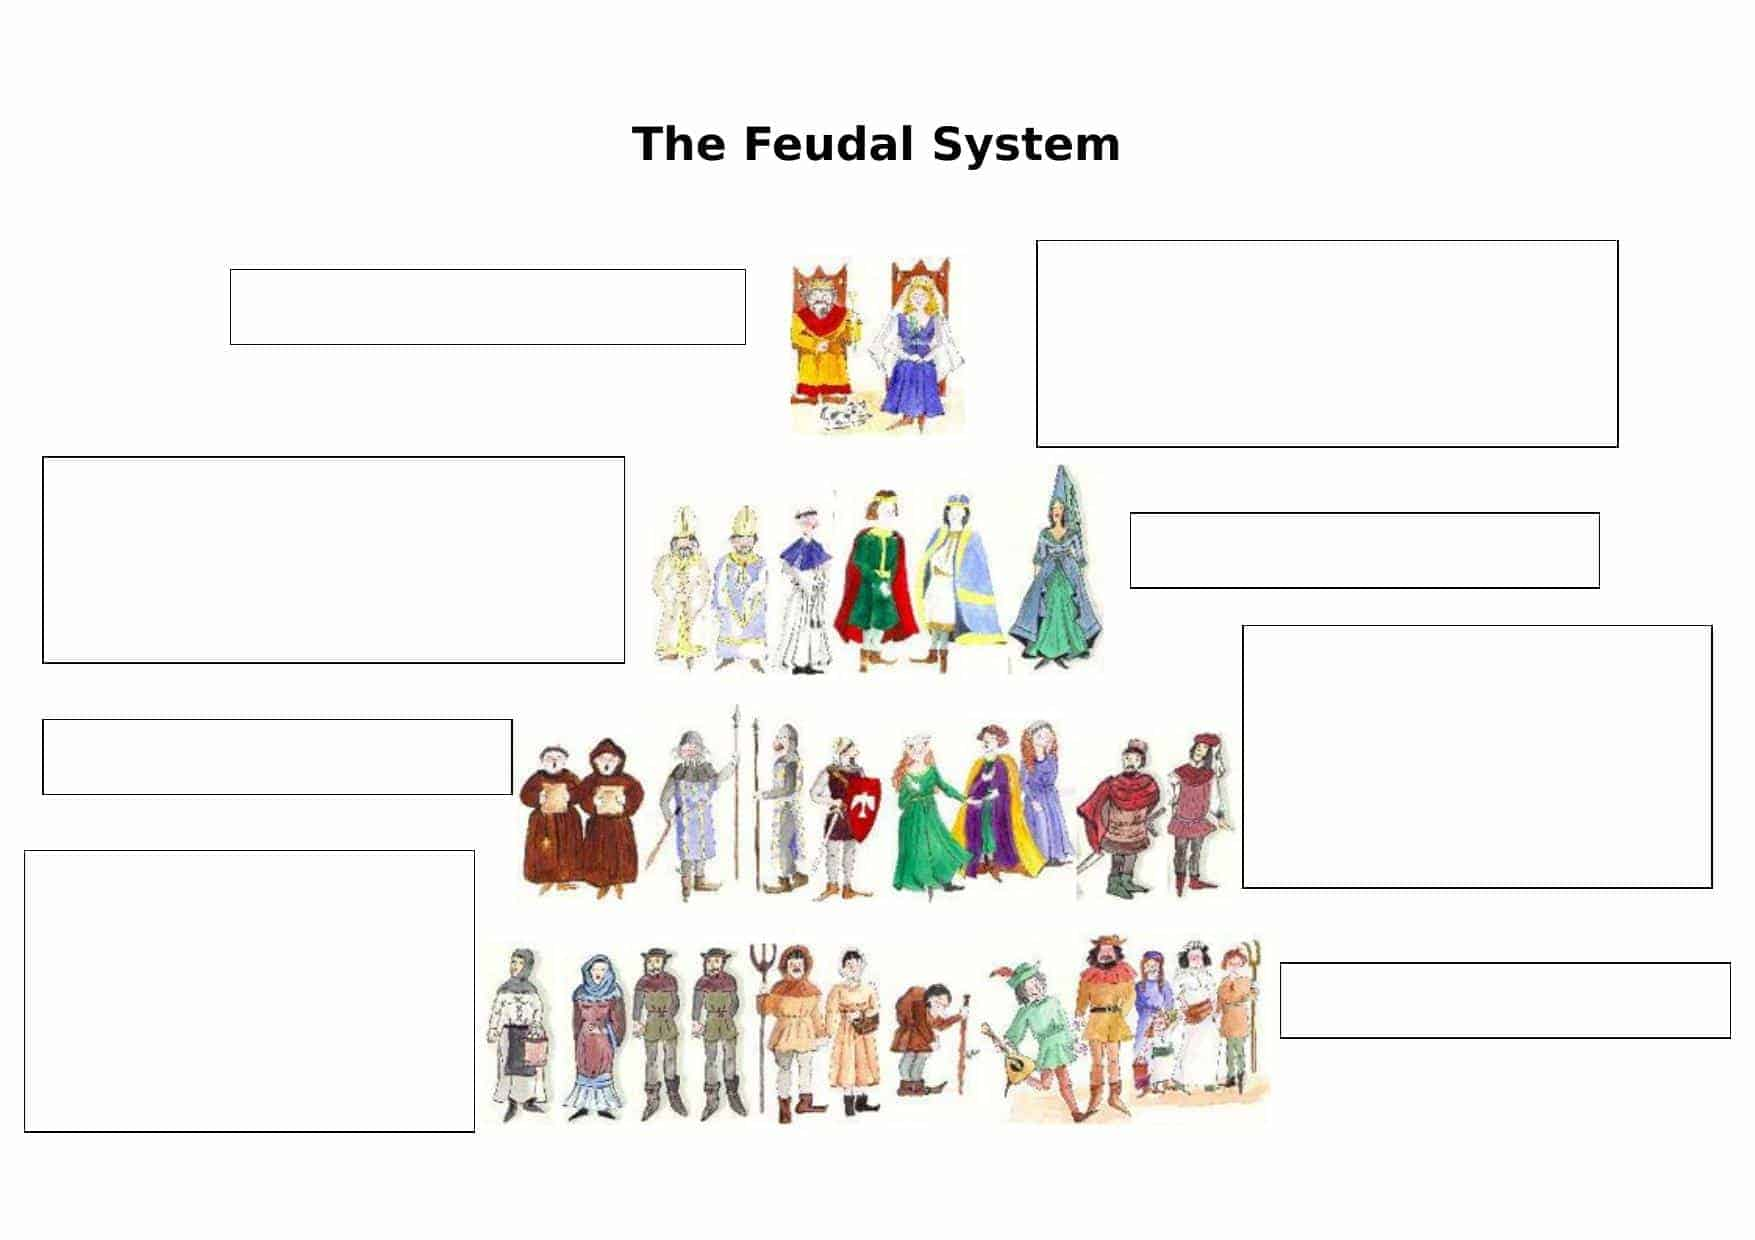 The Feudal System Diagram